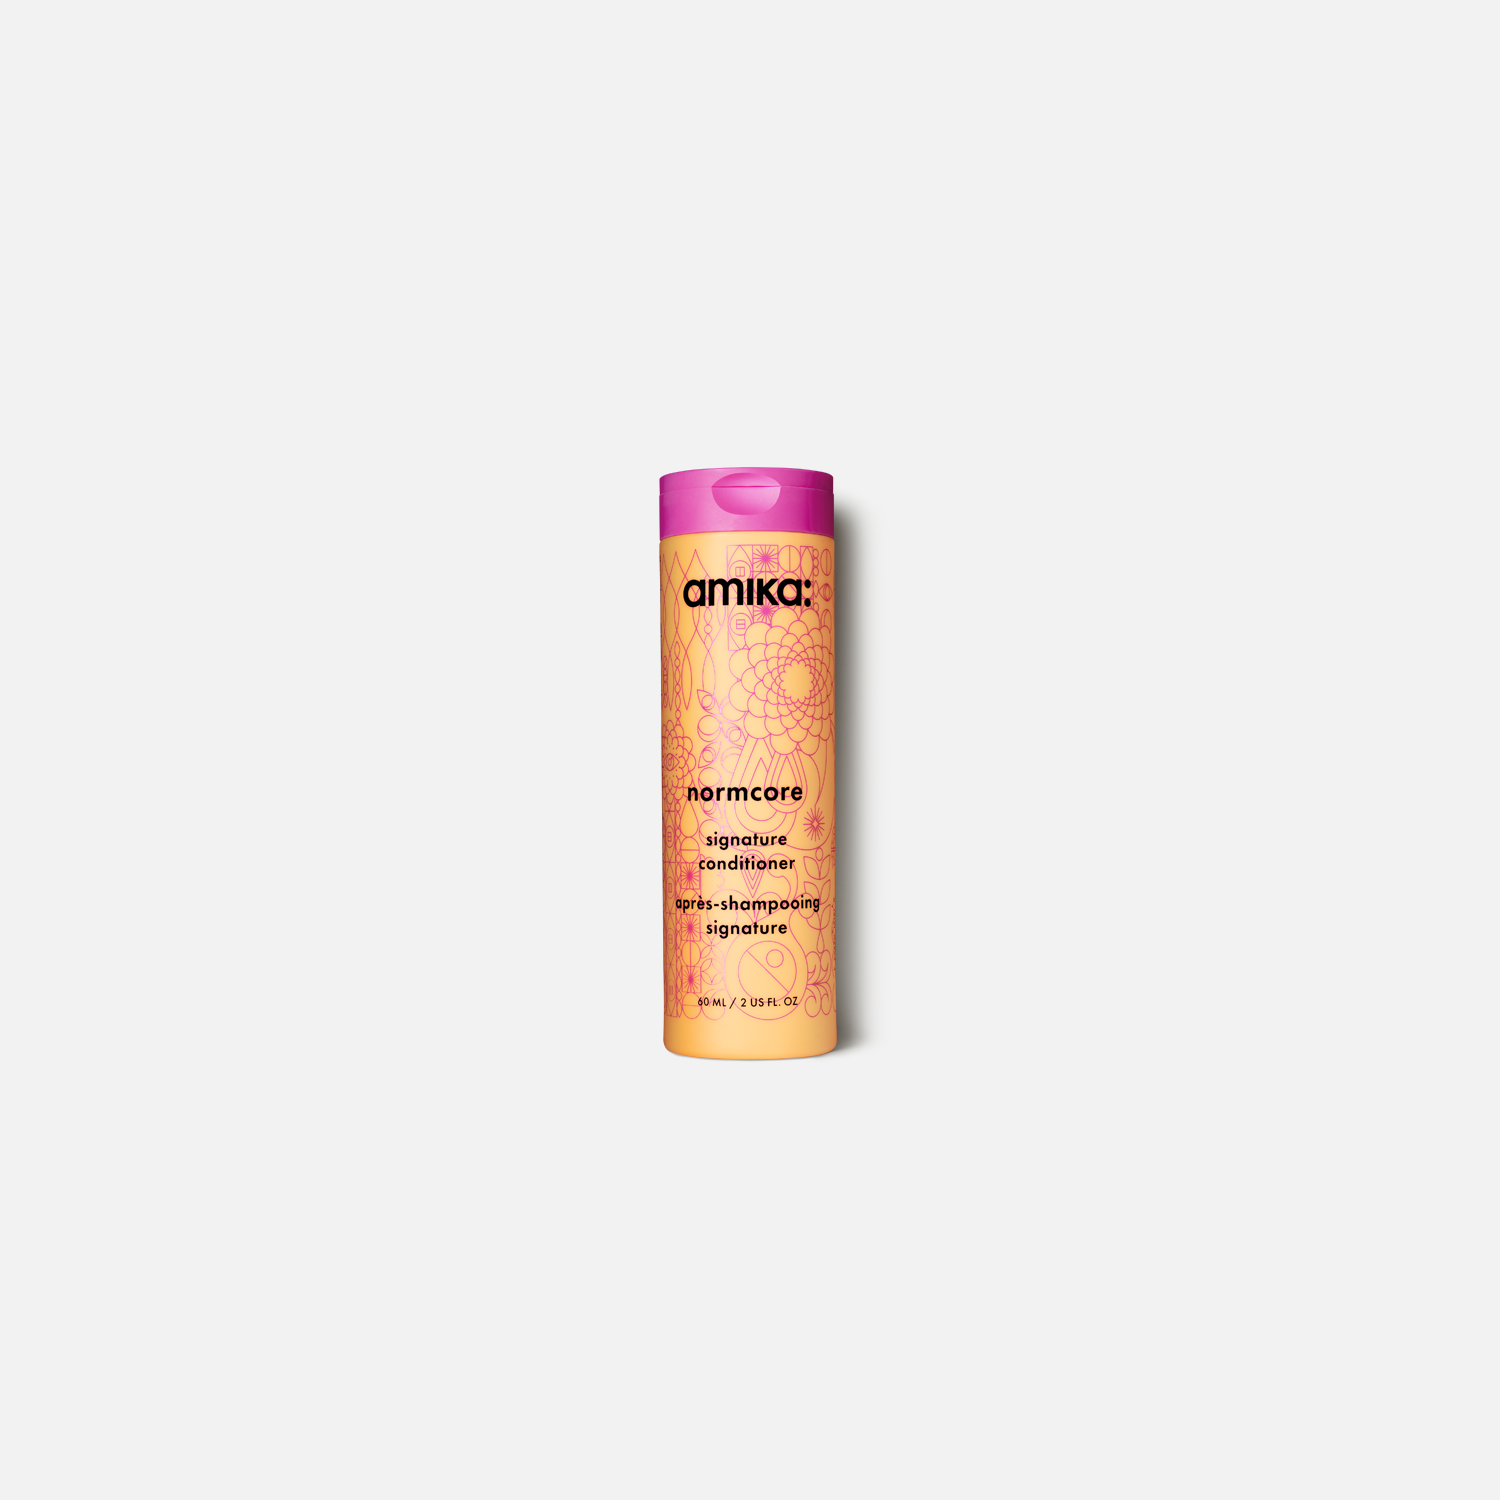 Normcore Signature Conditioner 2 oz | amika